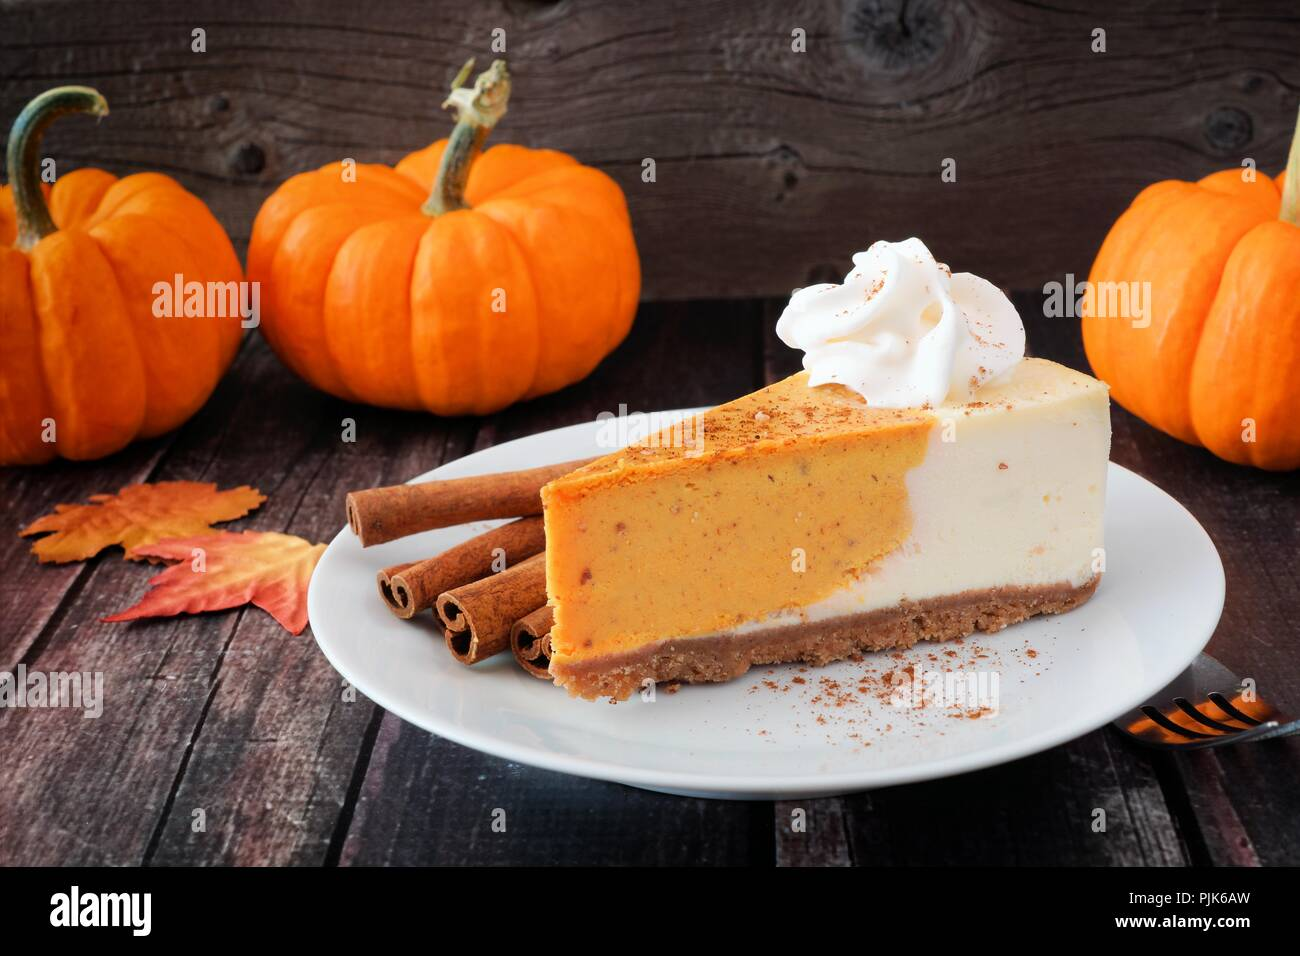 Slice of pumpkin cheesecake with whipped cream on a dark rustic wood background - Stock Image